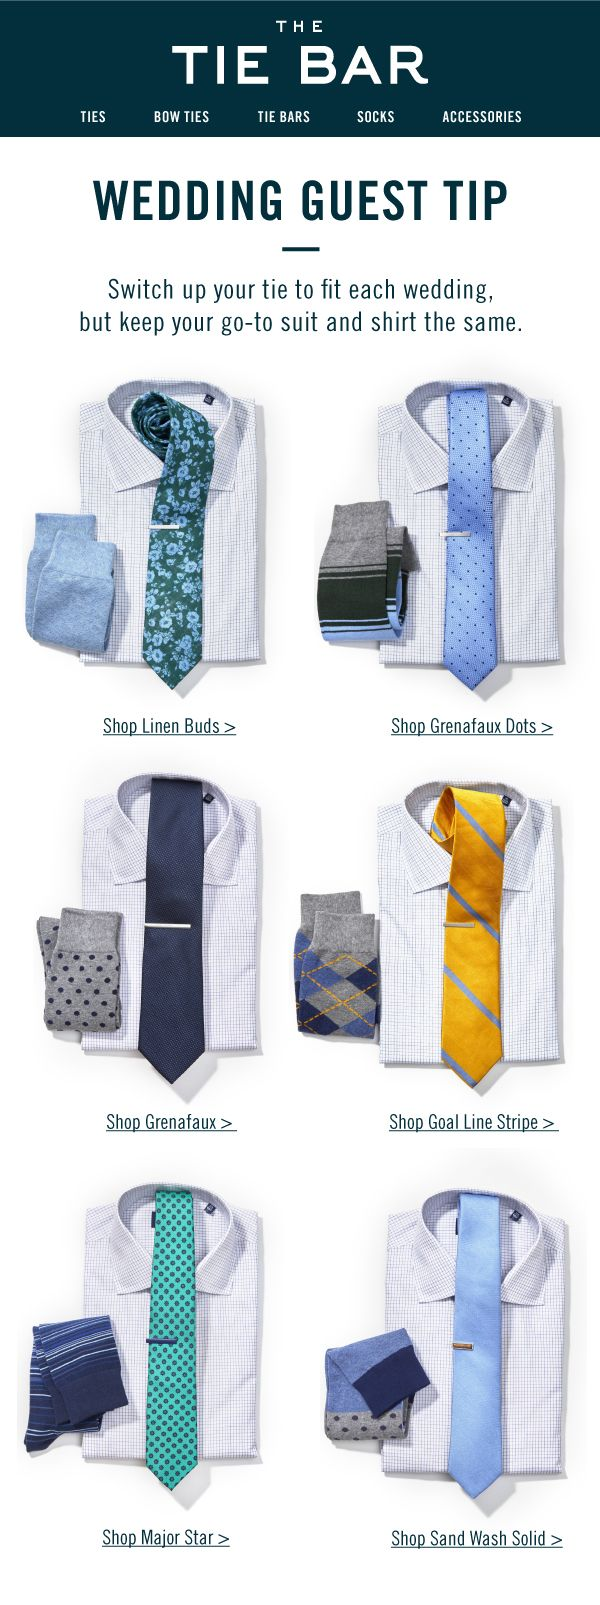 Six ways to wear our Tattersall shirt to a wedding. Shirts for $55 or 3/$140 at www.TheTieBar.com